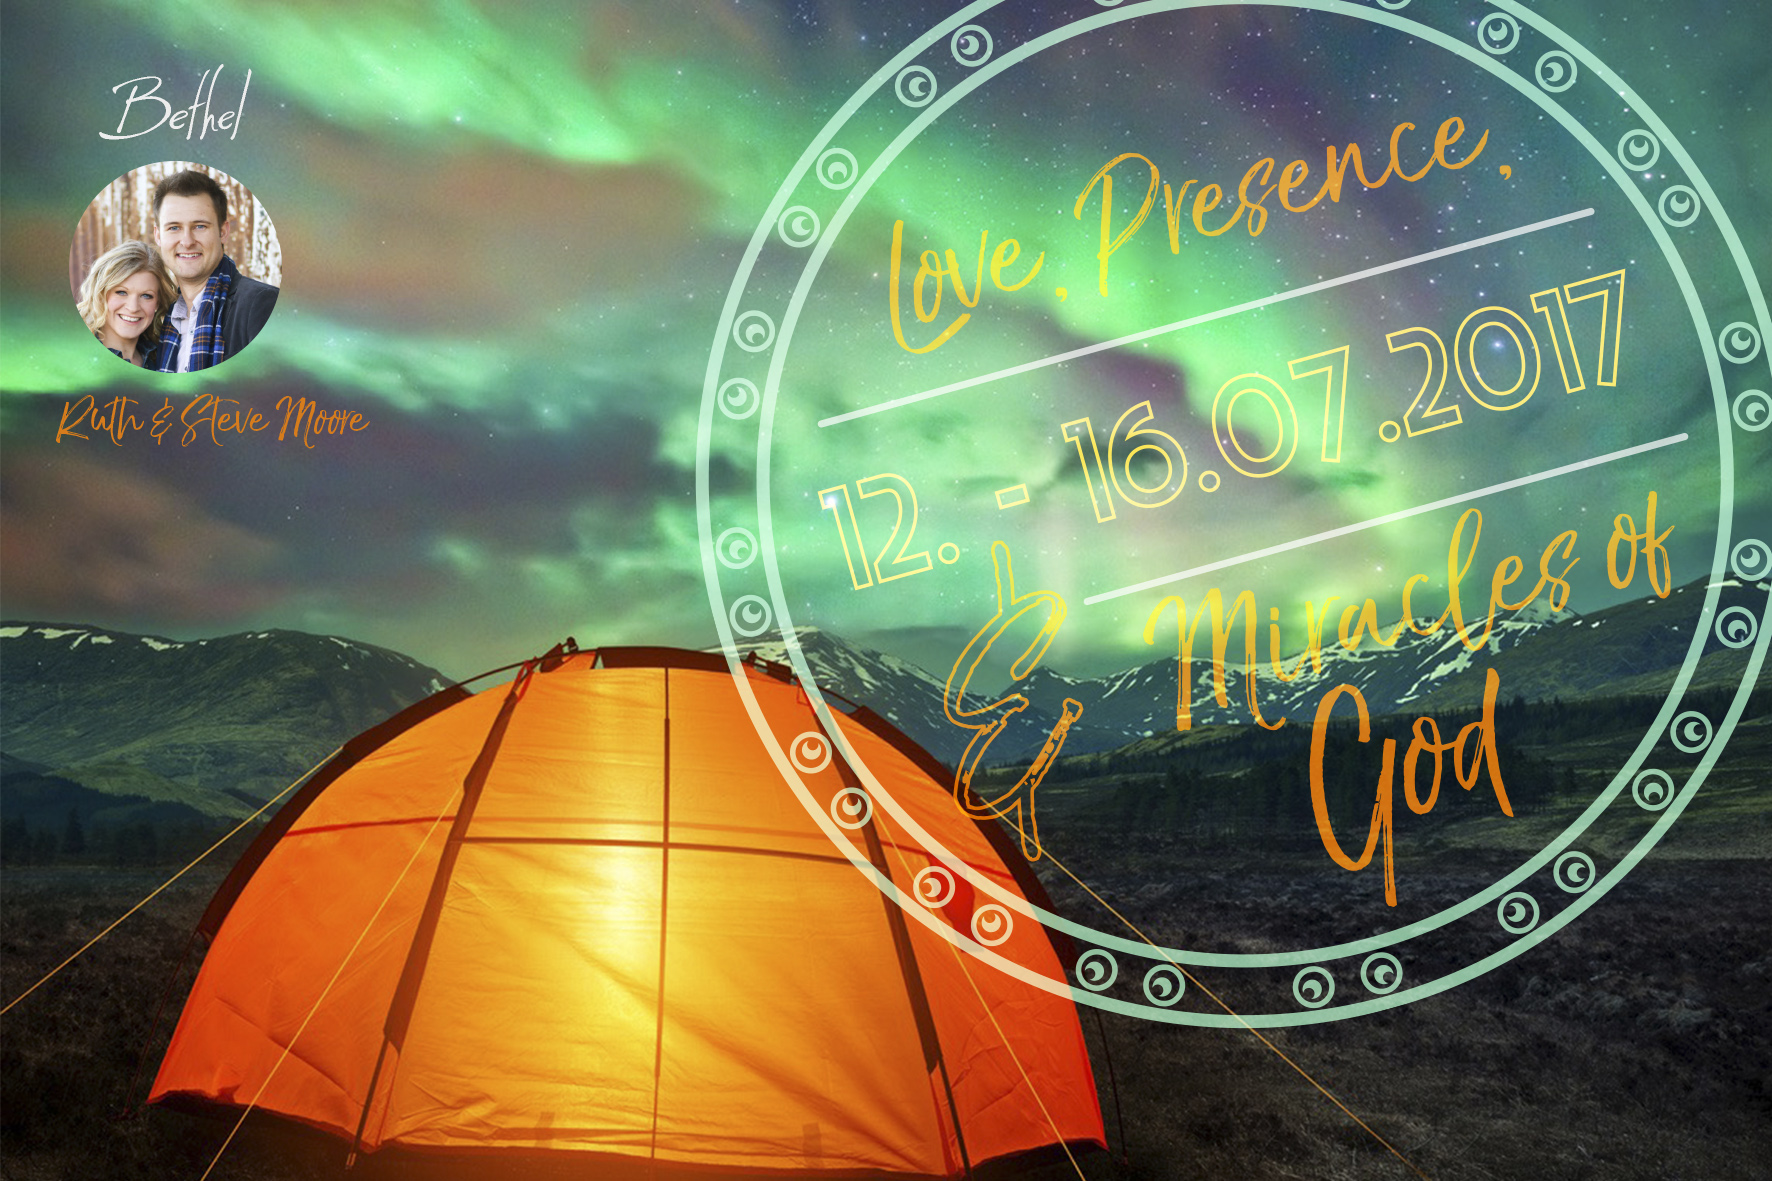 Love, Presence & Miracles of God - Conference    Tirol, Austria                July 12th - 16th, 2017